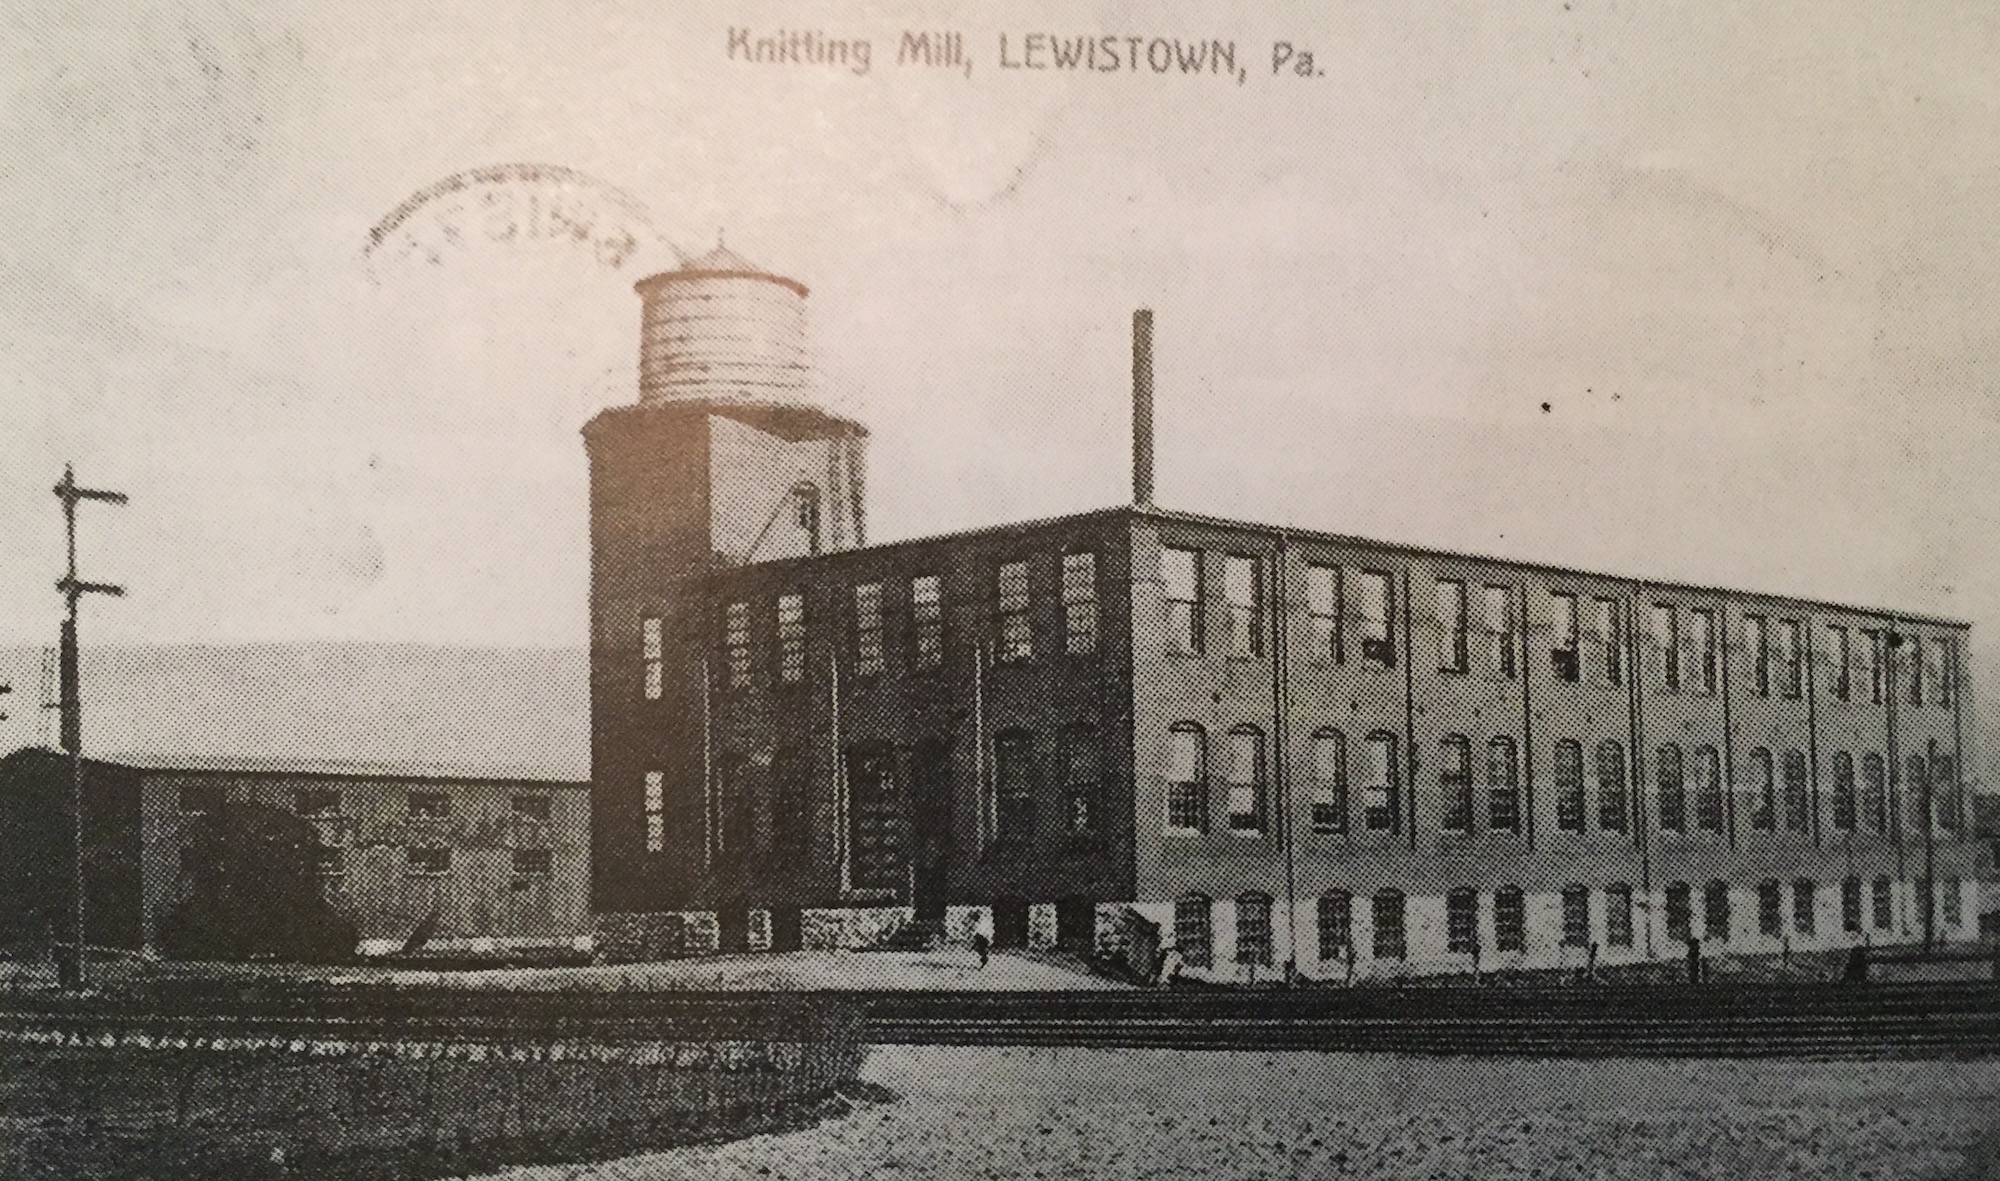 Thompson Knitting Mill